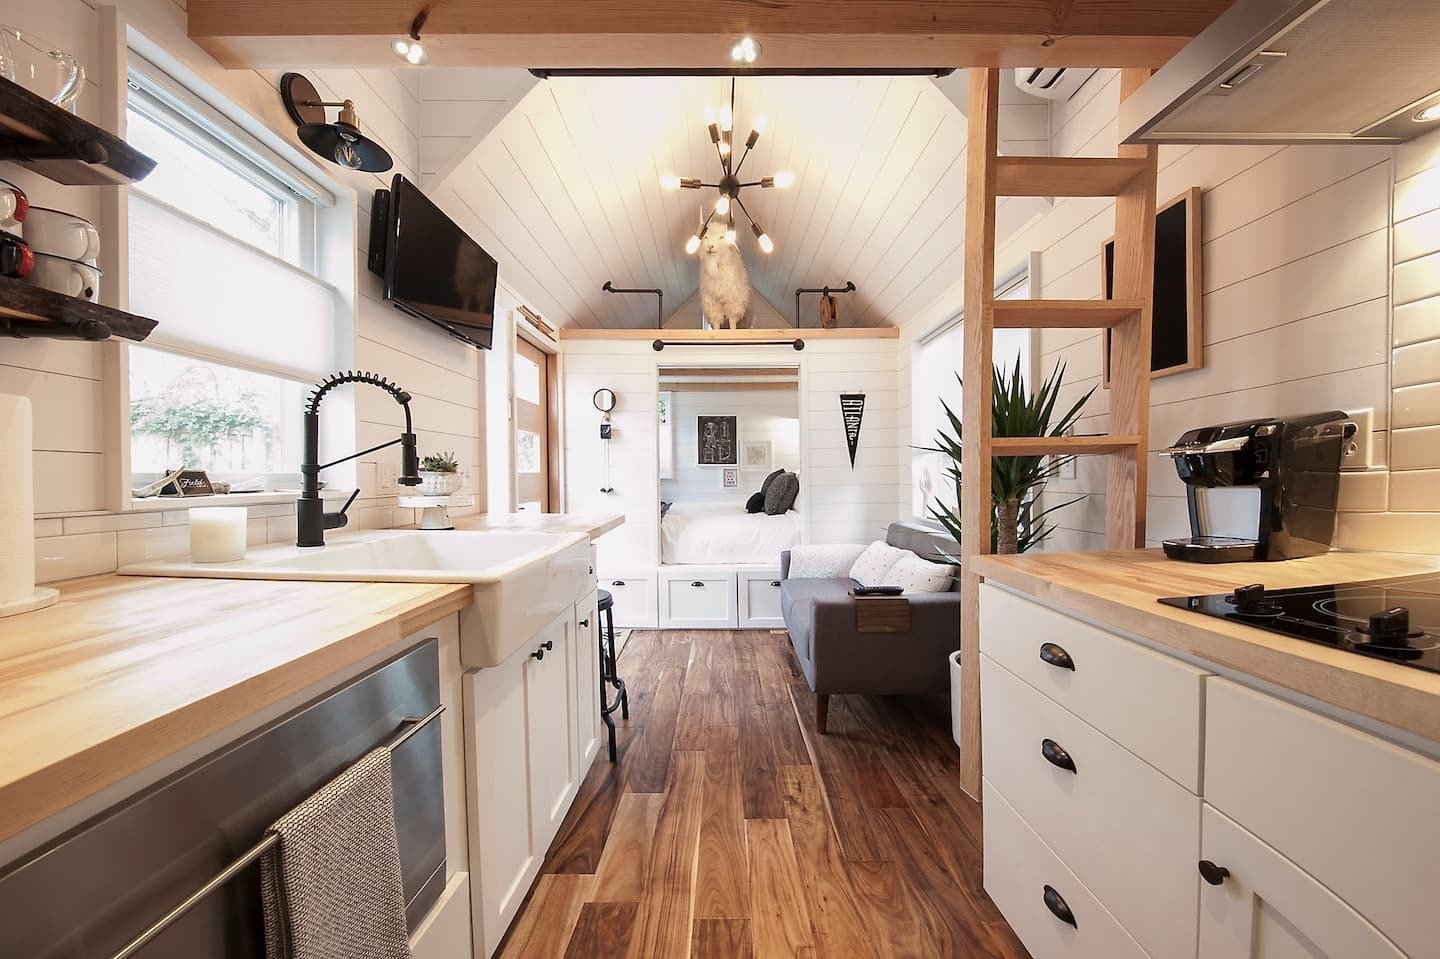 Unique Tiny House in Atlanta, Georgia, offers an area for outdoor dining, a ping pong table and a fire pit.  Photo 16 of 24 in Check Out These 23 Tiny Houses Perfect for an Autumn Getaway